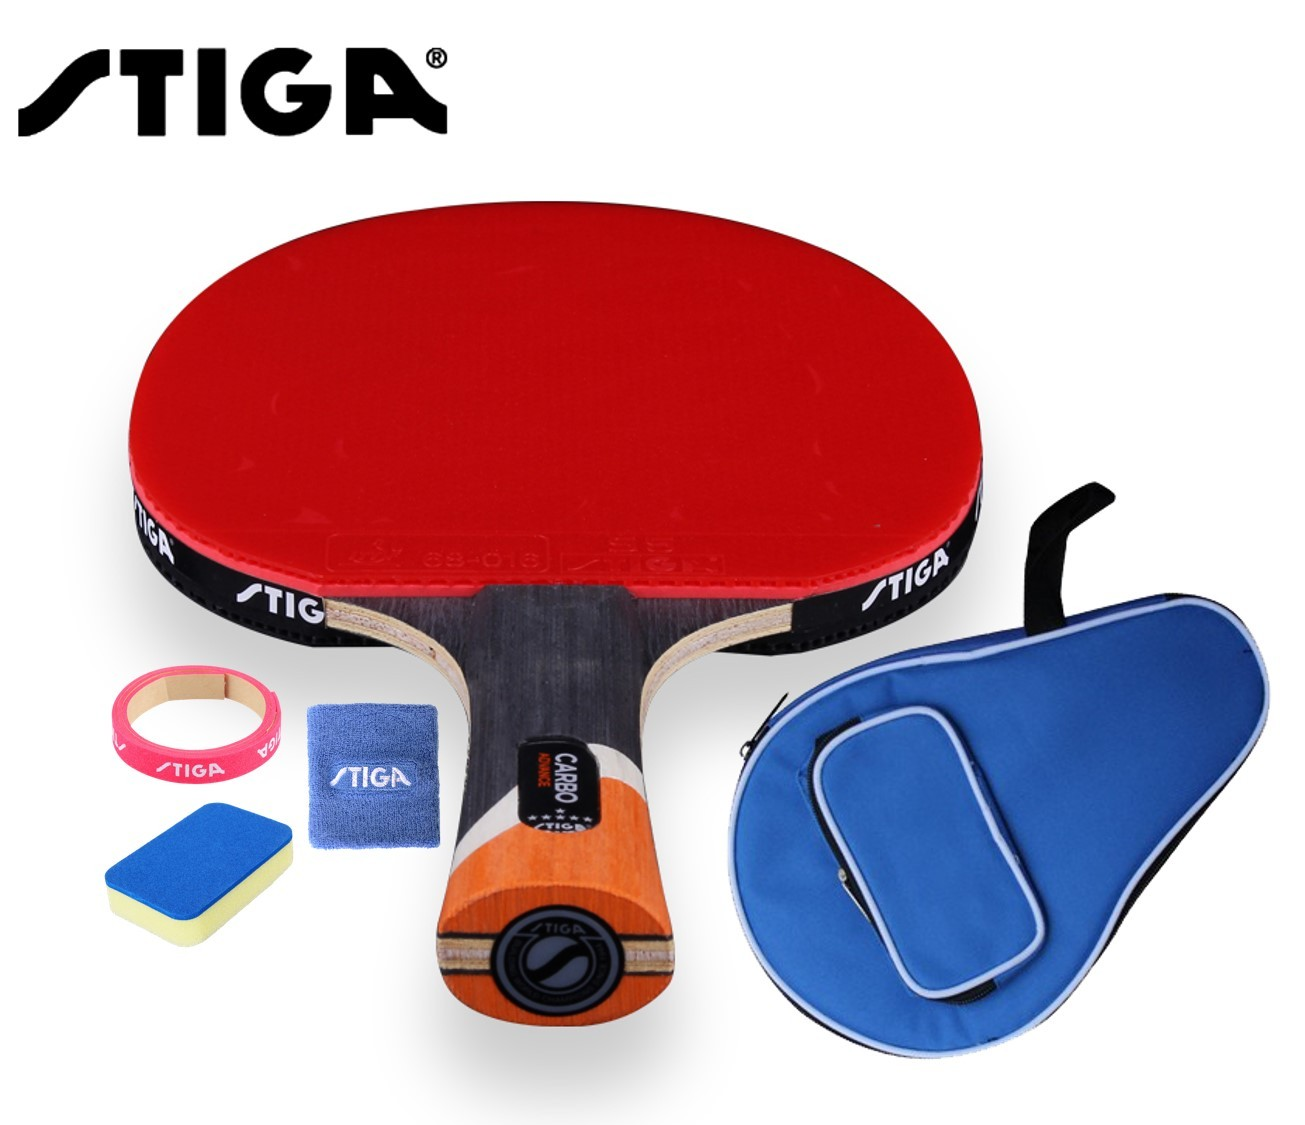 STIGA DNA PRO M with ESC technology Table Tennis Rubber Ping Pong HOT!